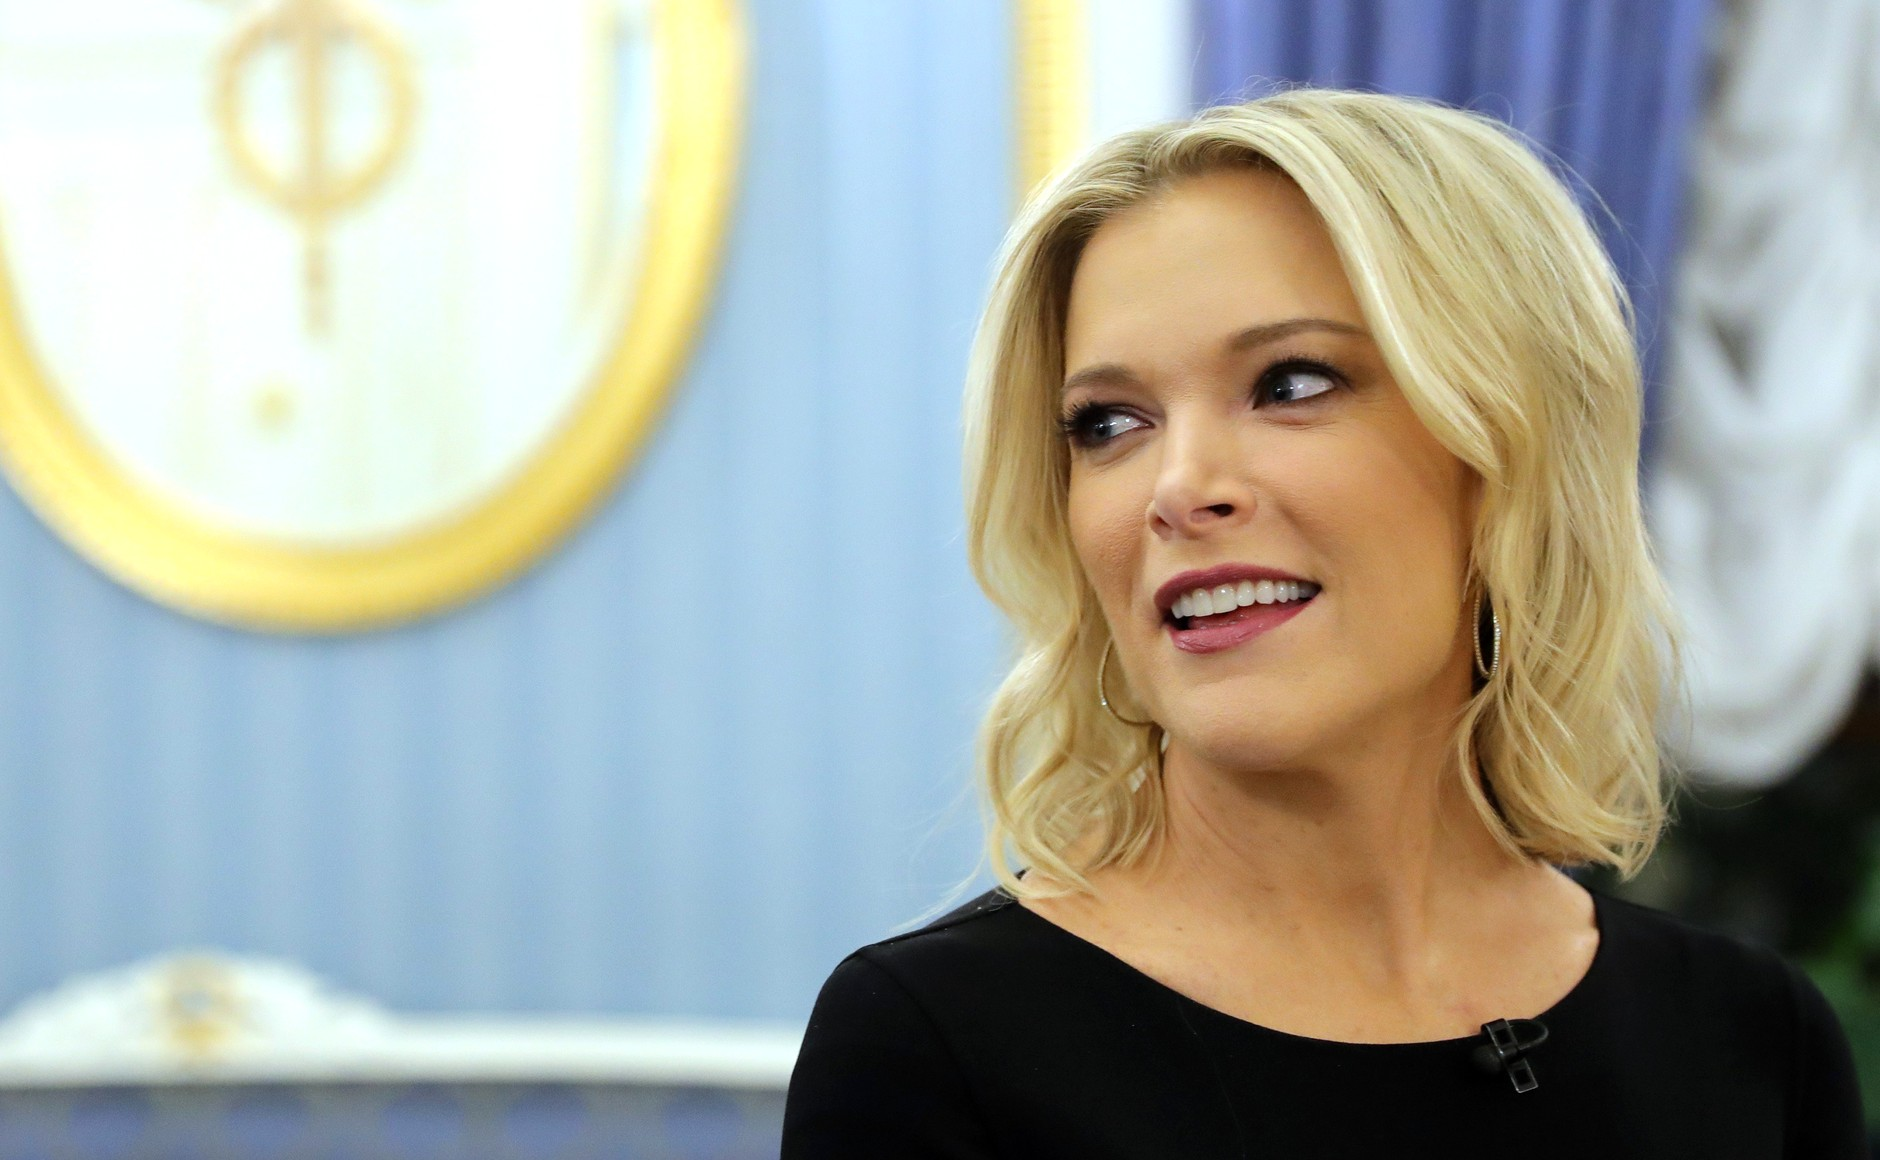 Megyn Kelly Returns With Interview of Staffer Fired Over Leaked ABC Epstein Video [UPDATE]